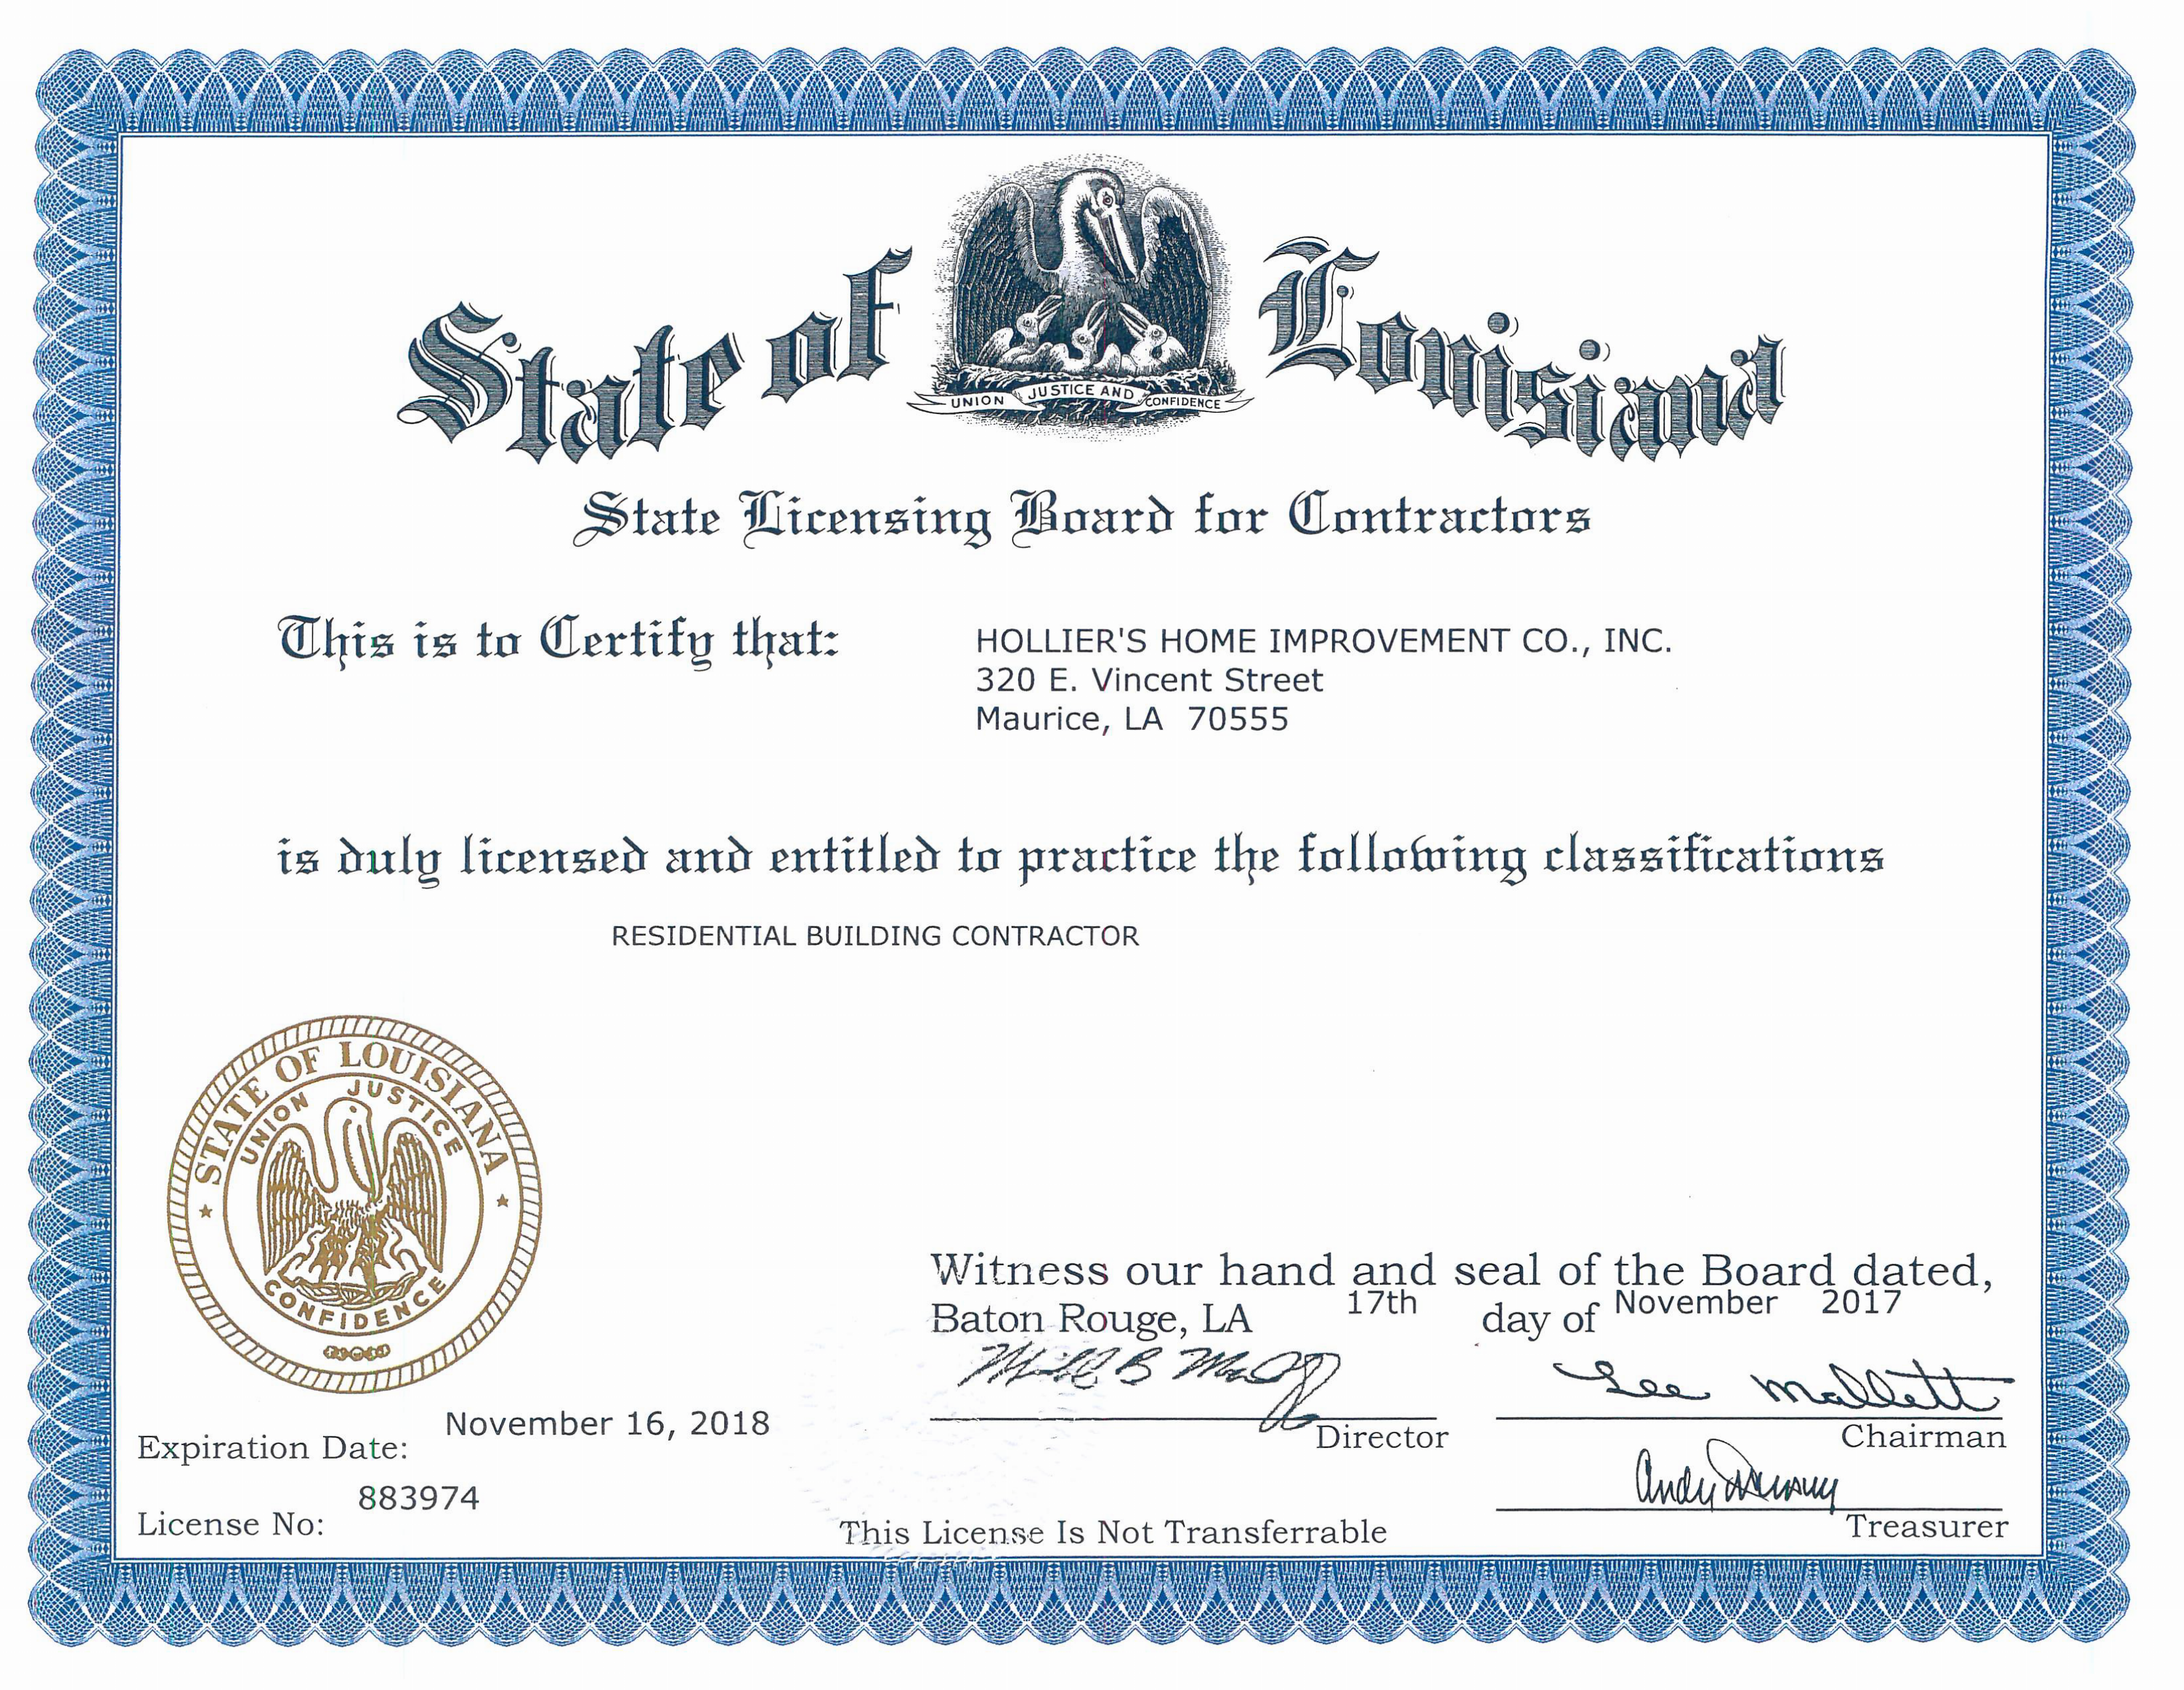 Certifications Hollier S Home Improvement